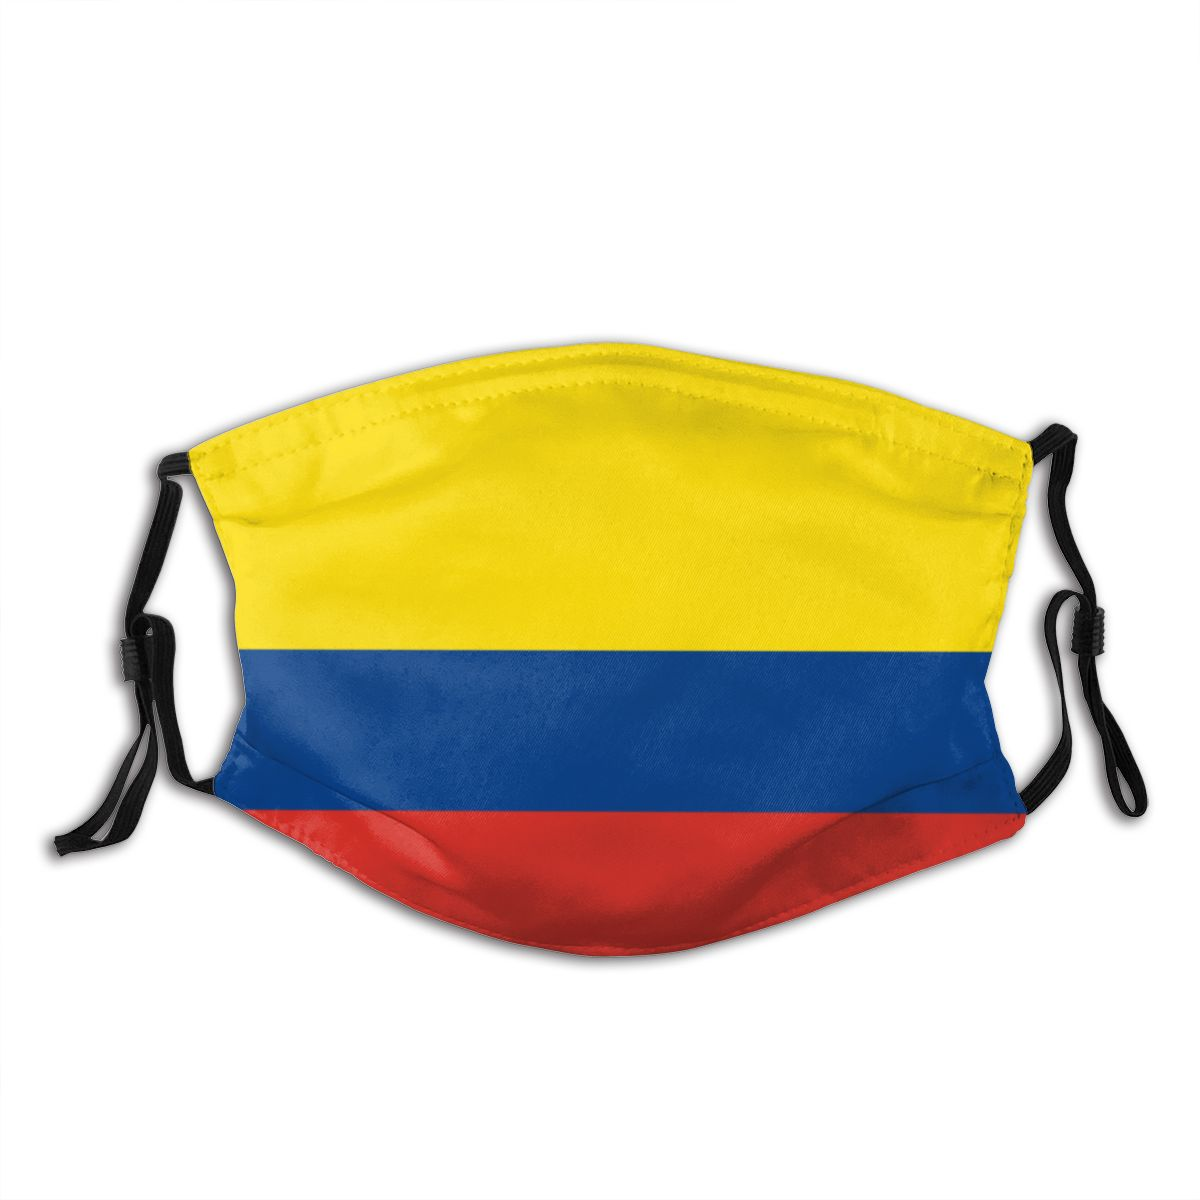 Protective Mask With Filter Colombia Flag (1) Anti Dust PM2.5 Reuse Adult Teen Child Girl